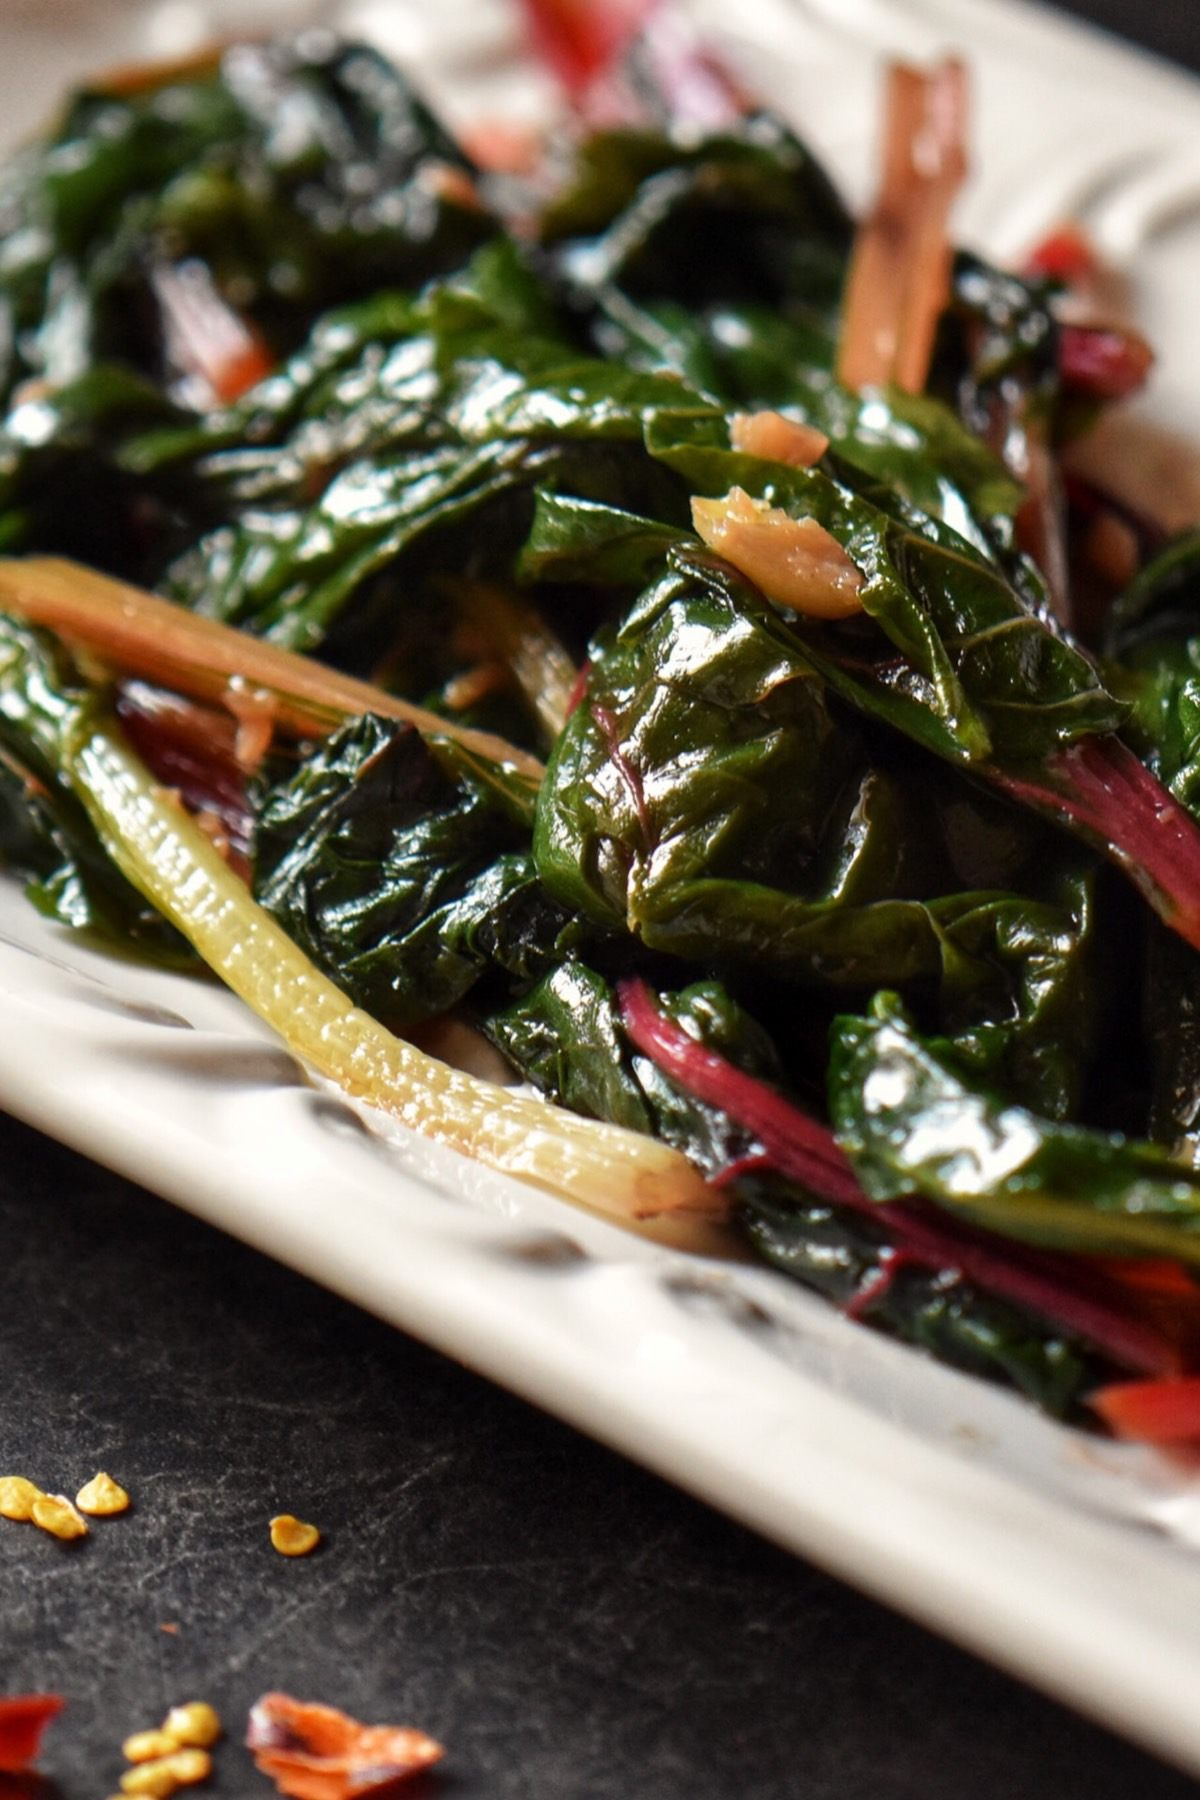 A close up of chard in a white serving dish.